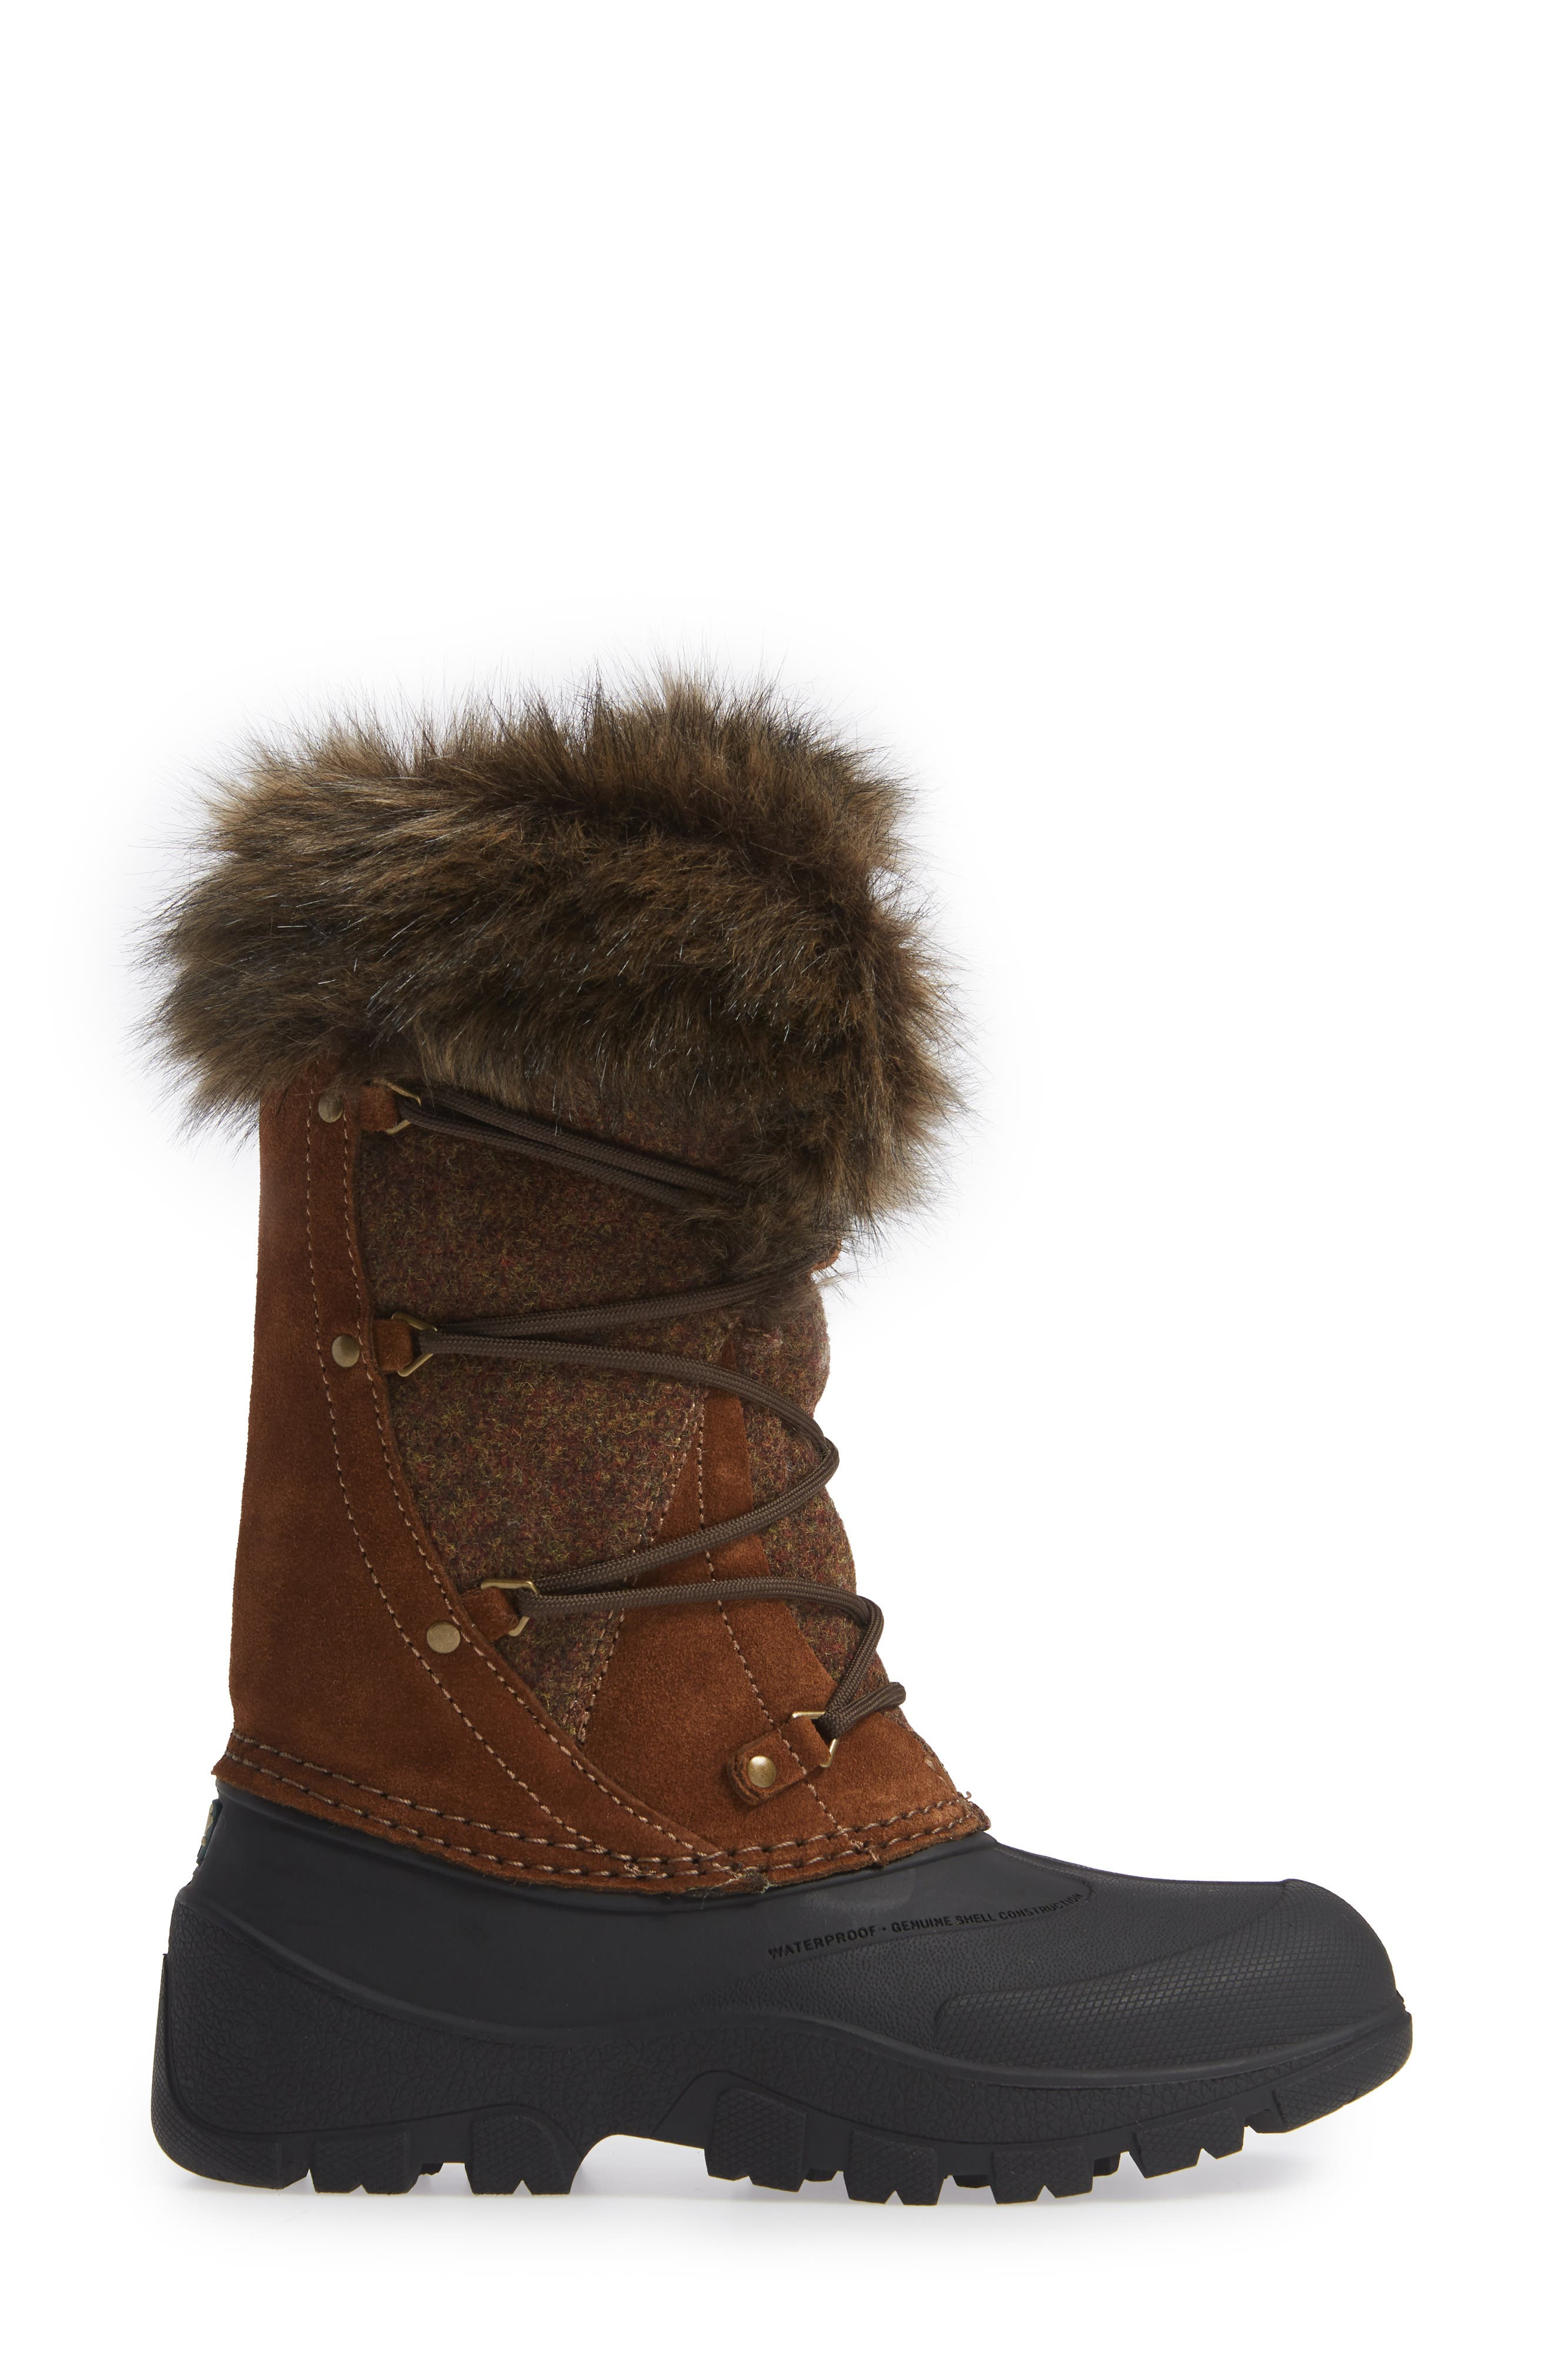 Ice Cougar Waterproof Knee High Winter Boot with Faux Fur Trim,                             Alternate thumbnail 3, color,                             DACHSHUND WOOL